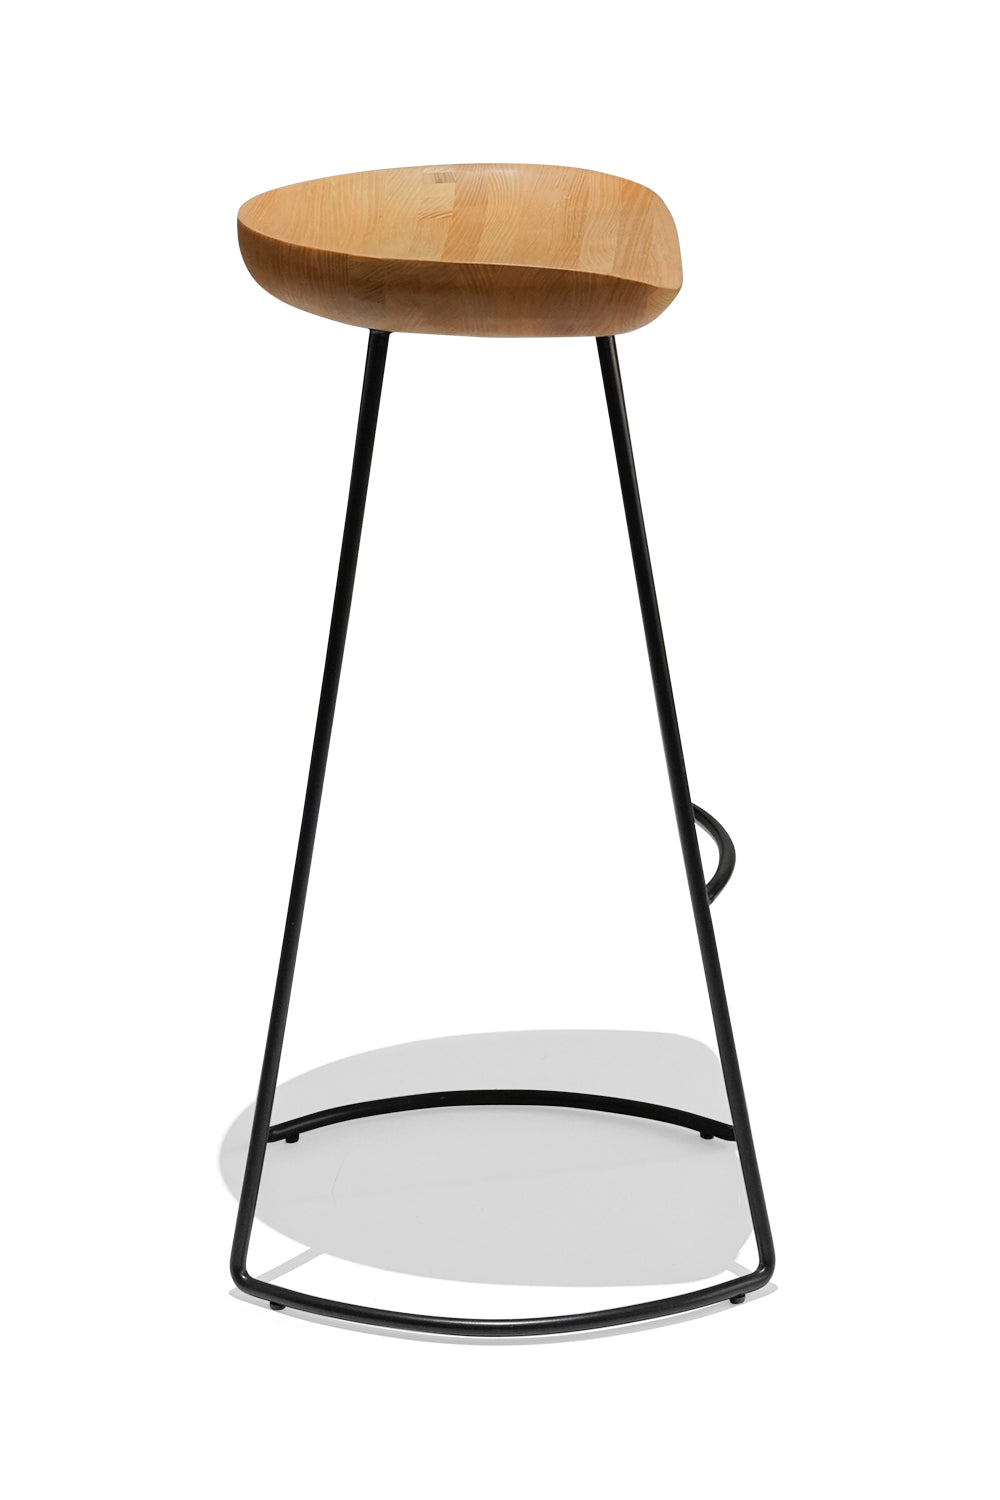 SLED bar stool